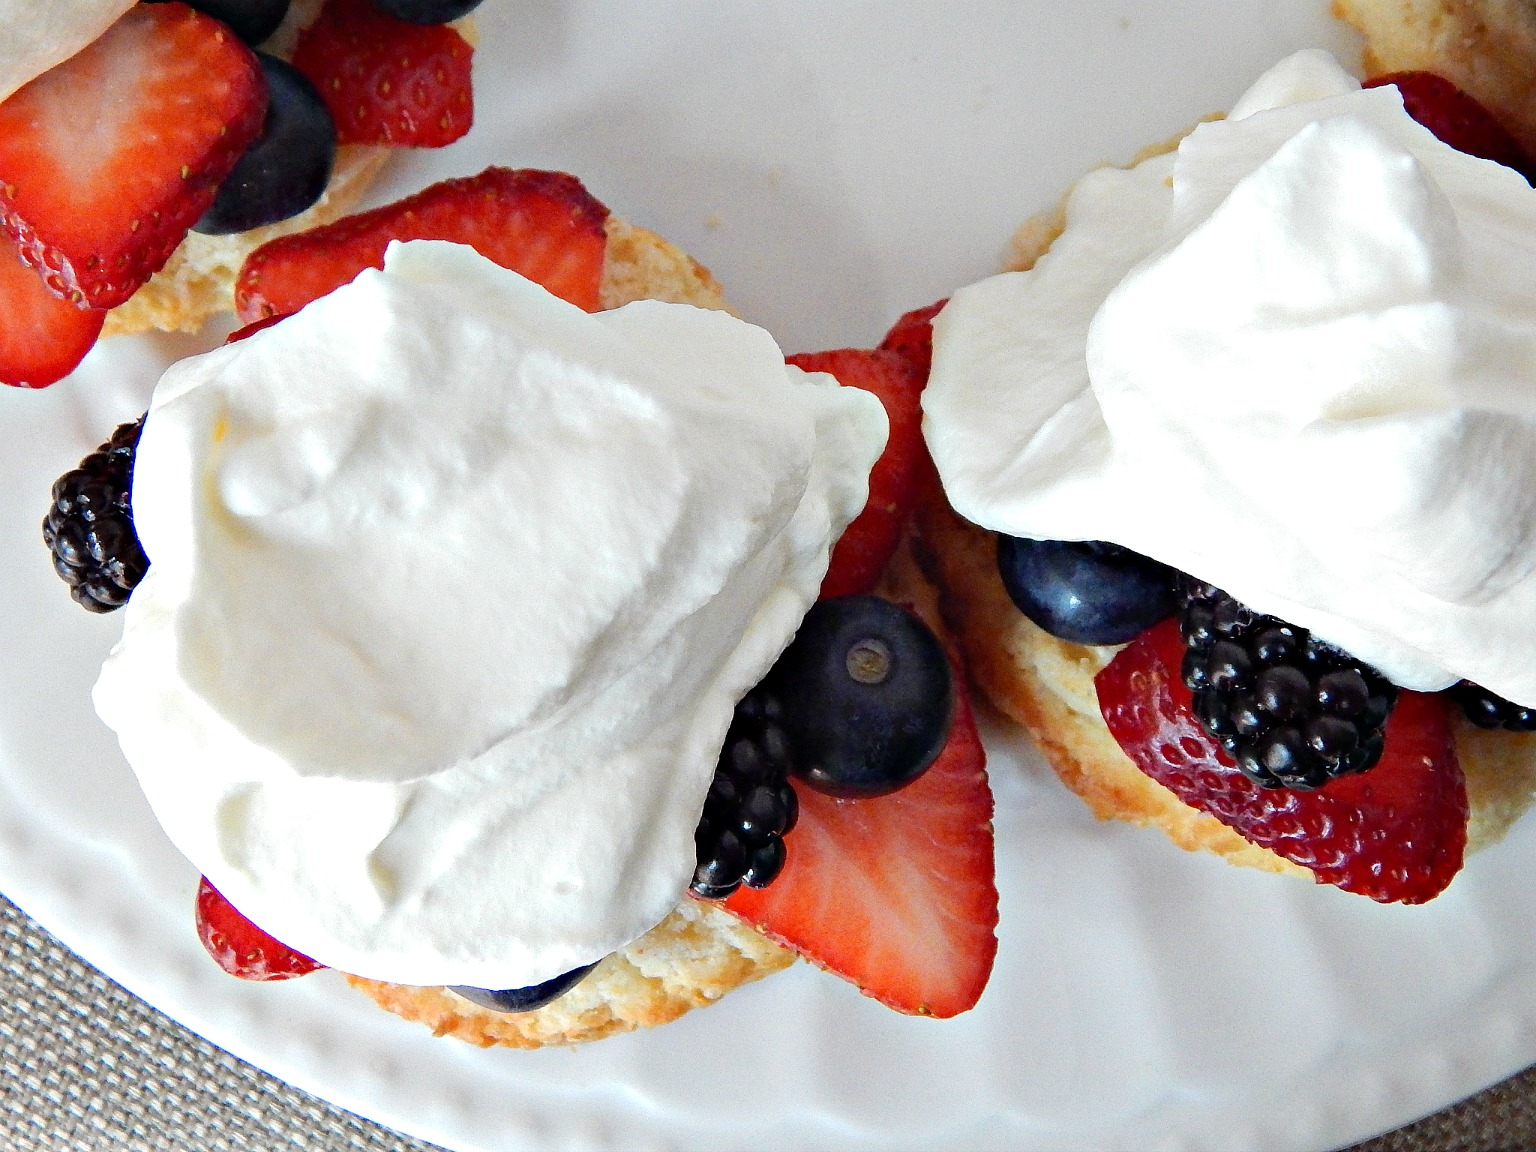 Bursting Berry Shortcakes Strawberries Blackberries Blueberries Whipped Cream Shortcakes on Sugar Bananas